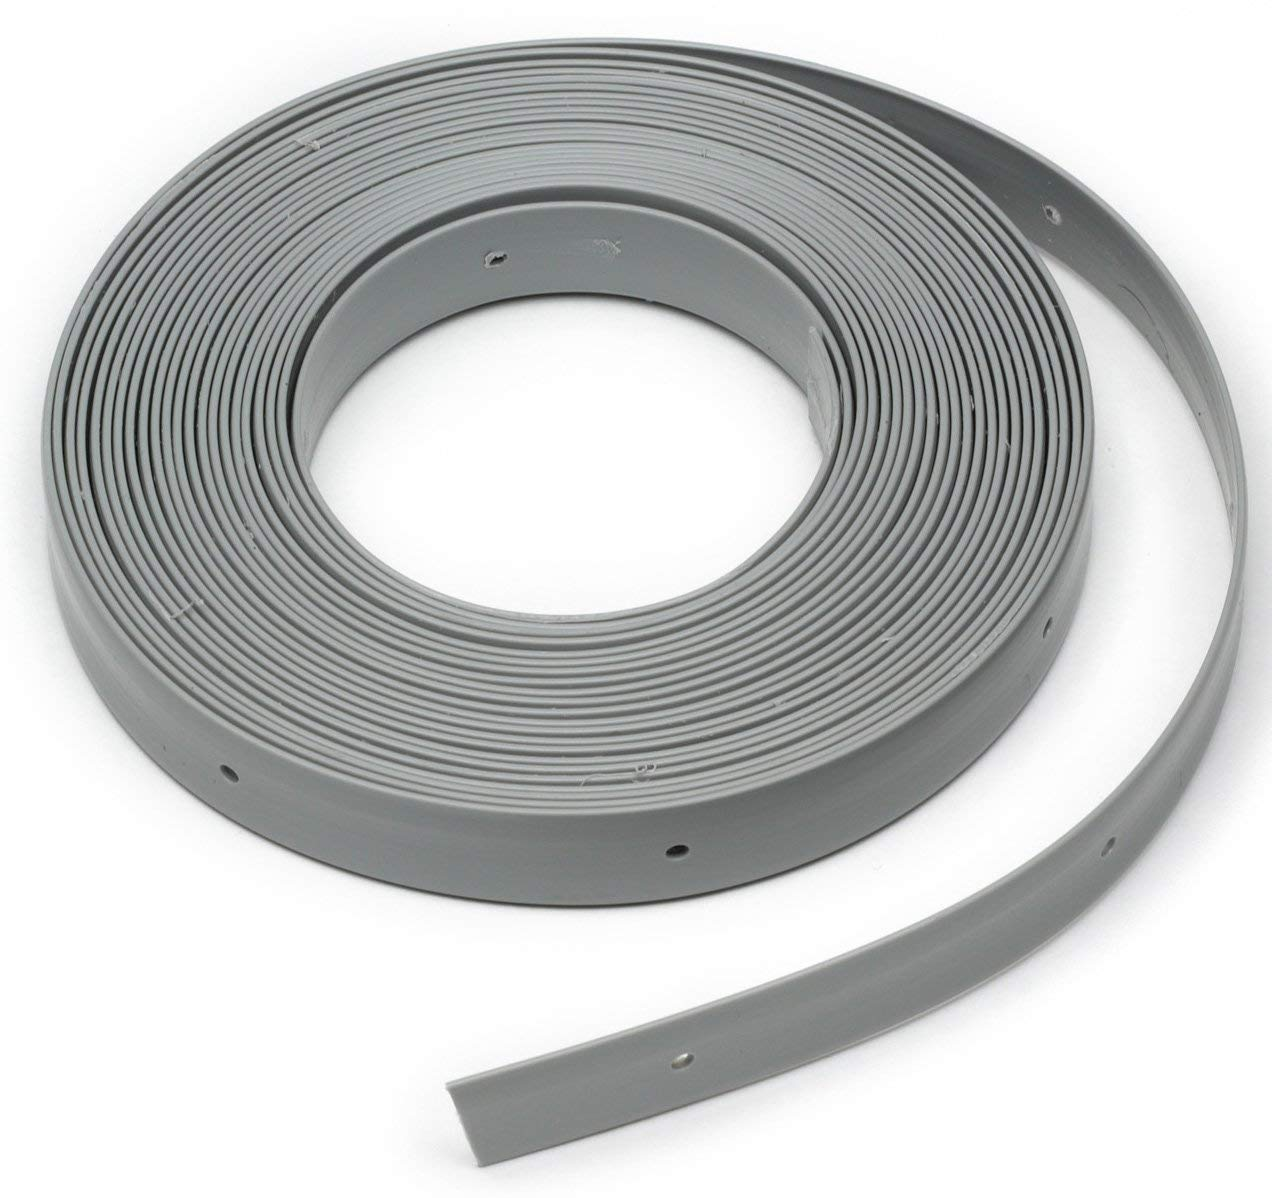 3//4 x 100 Renewed Oatey 33927 Securing Straps 3//4-Inch by 100-Foot